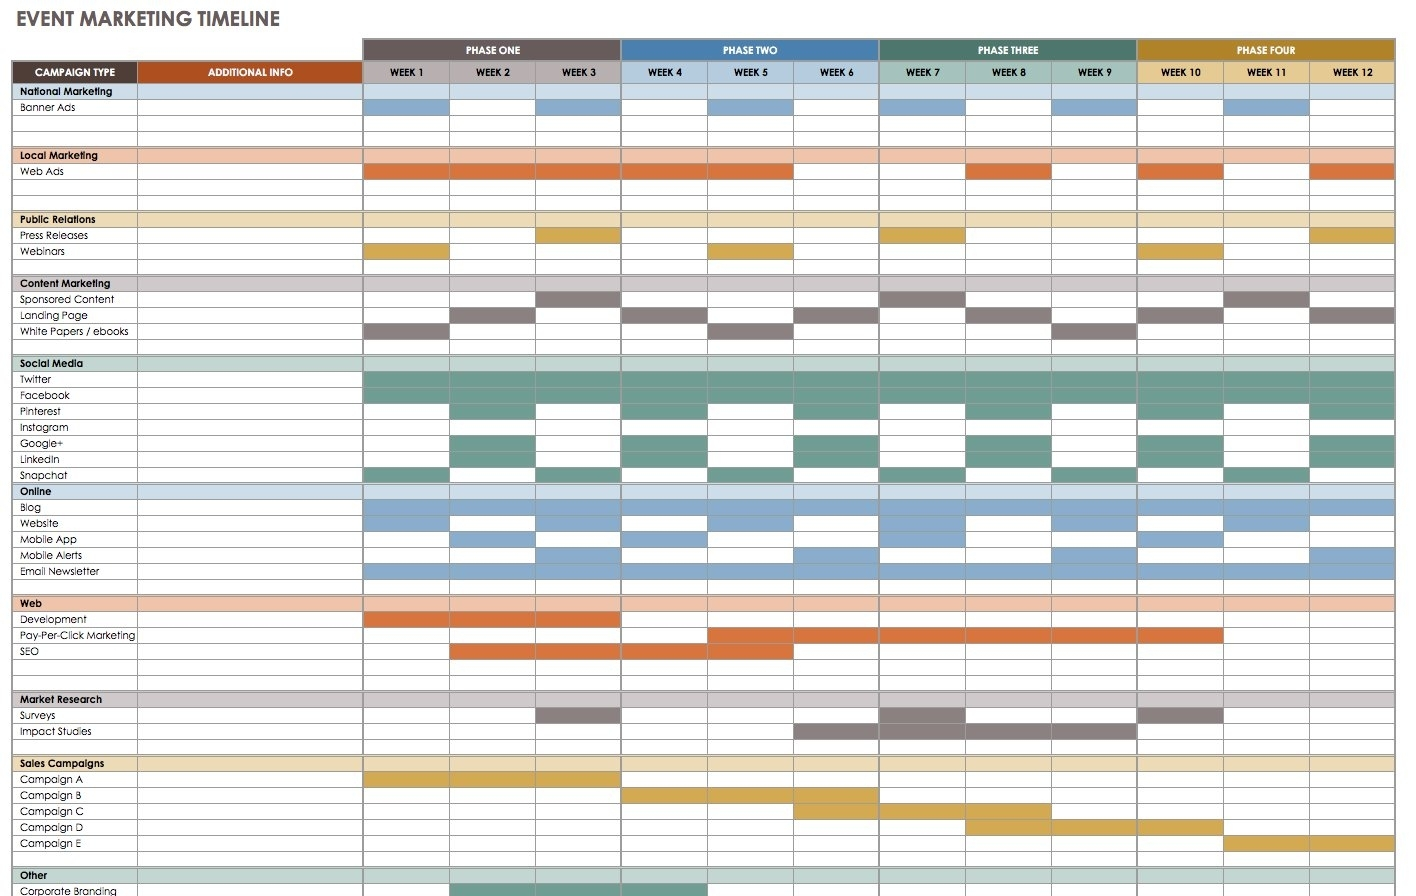 21 Free Event Planning Templates | Smartsheet regarding Event Planning Template Excel Free